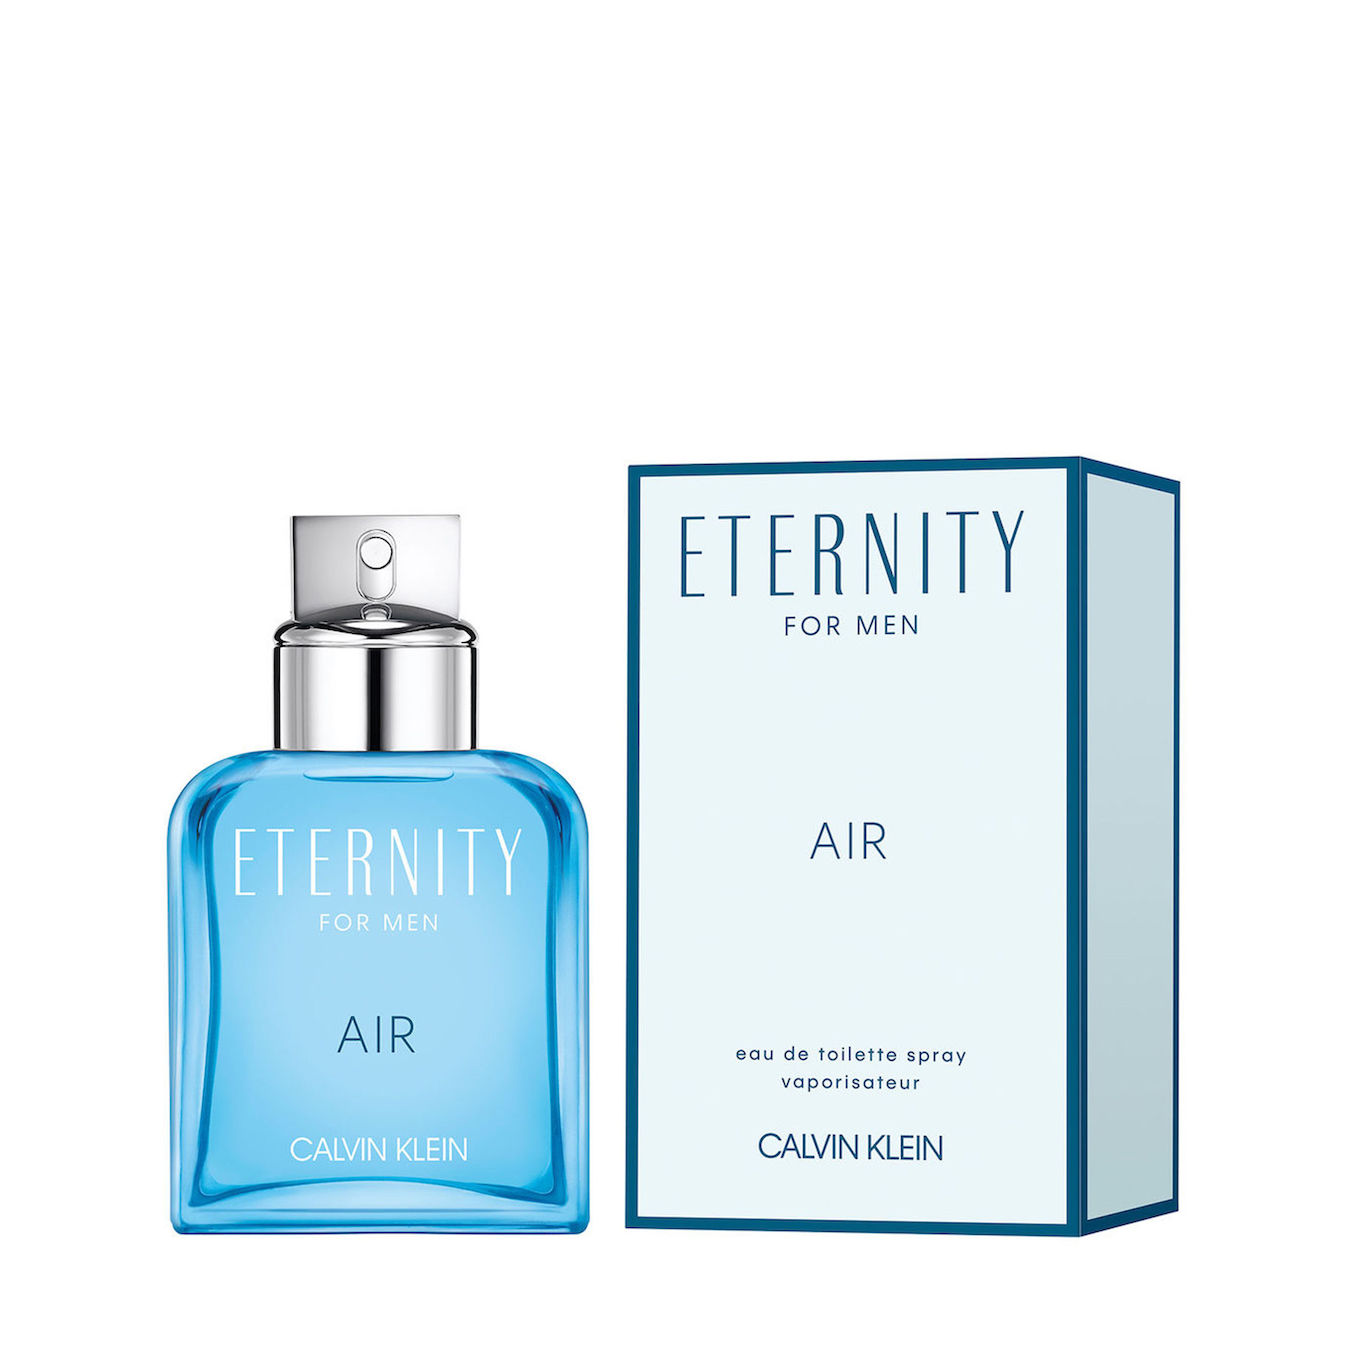 Calvin Klein Eternity Air for Men - toaletní voda M Objem: 100 ml